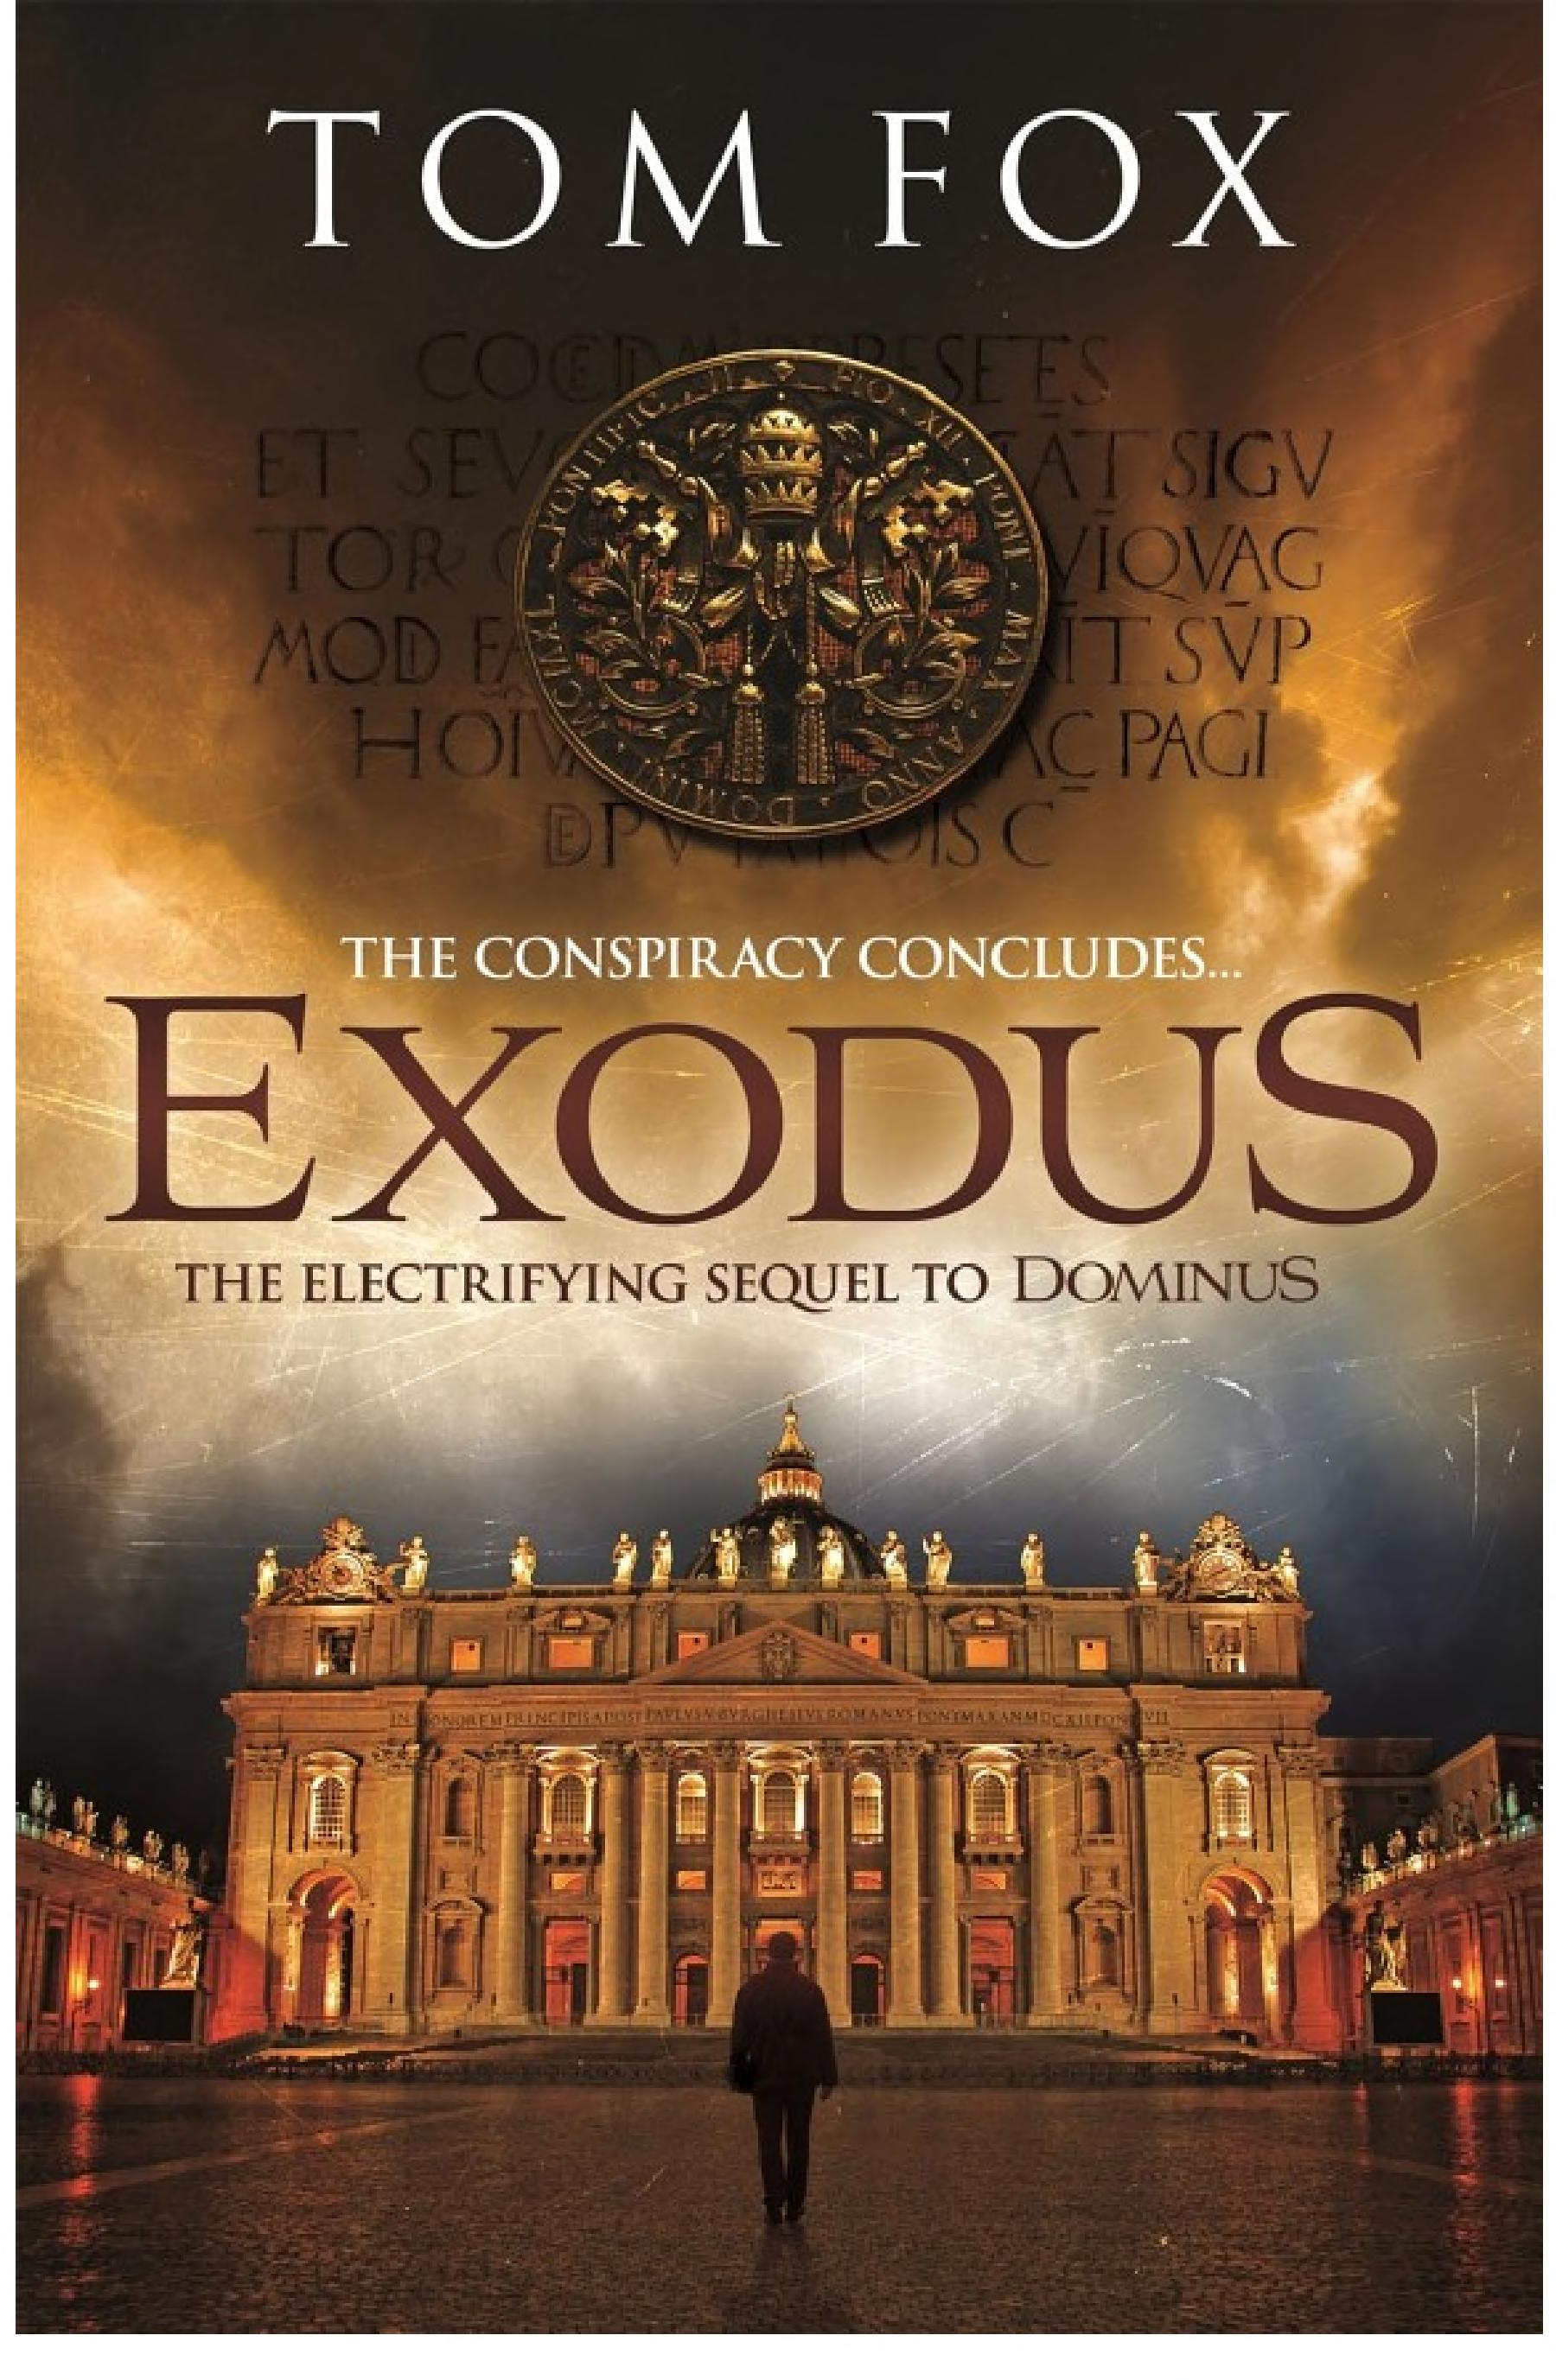 Exodus  A Tom Fox Enovella  Simon Toyne will be gripped by this high-octane